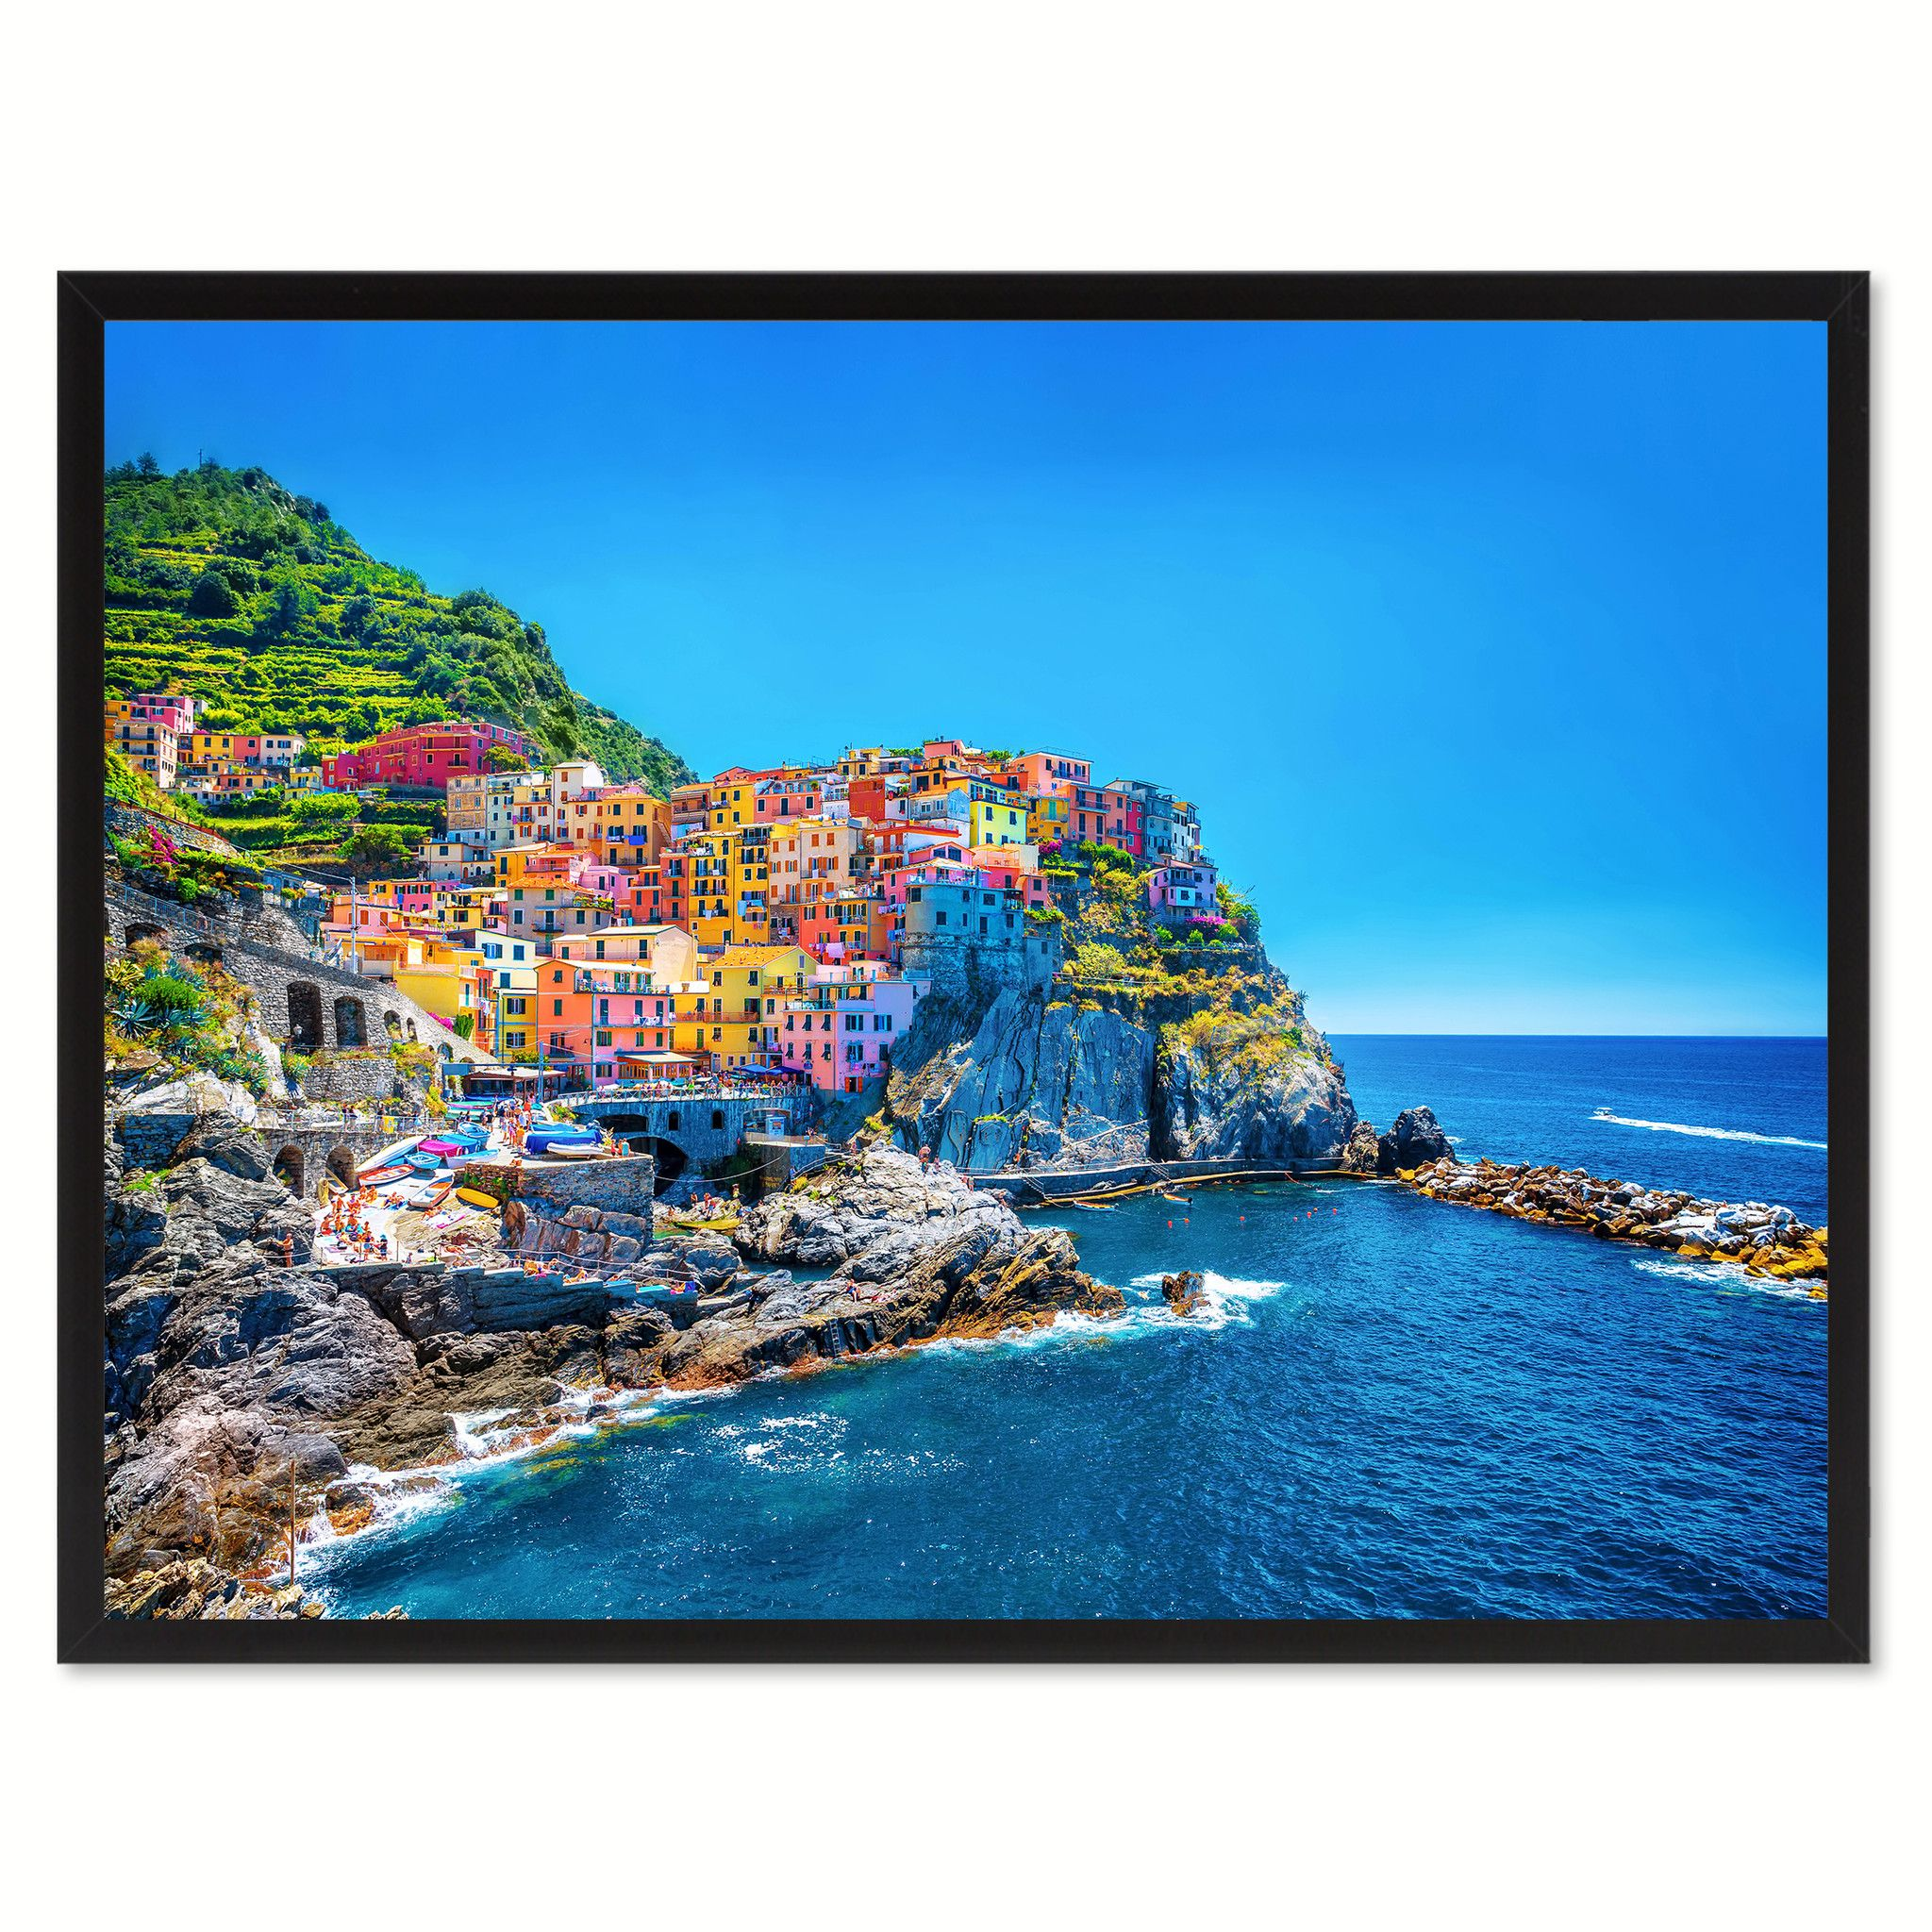 Cinque Terre Mediterranean Sea Landscape Photo Canvas Print Pictures ...